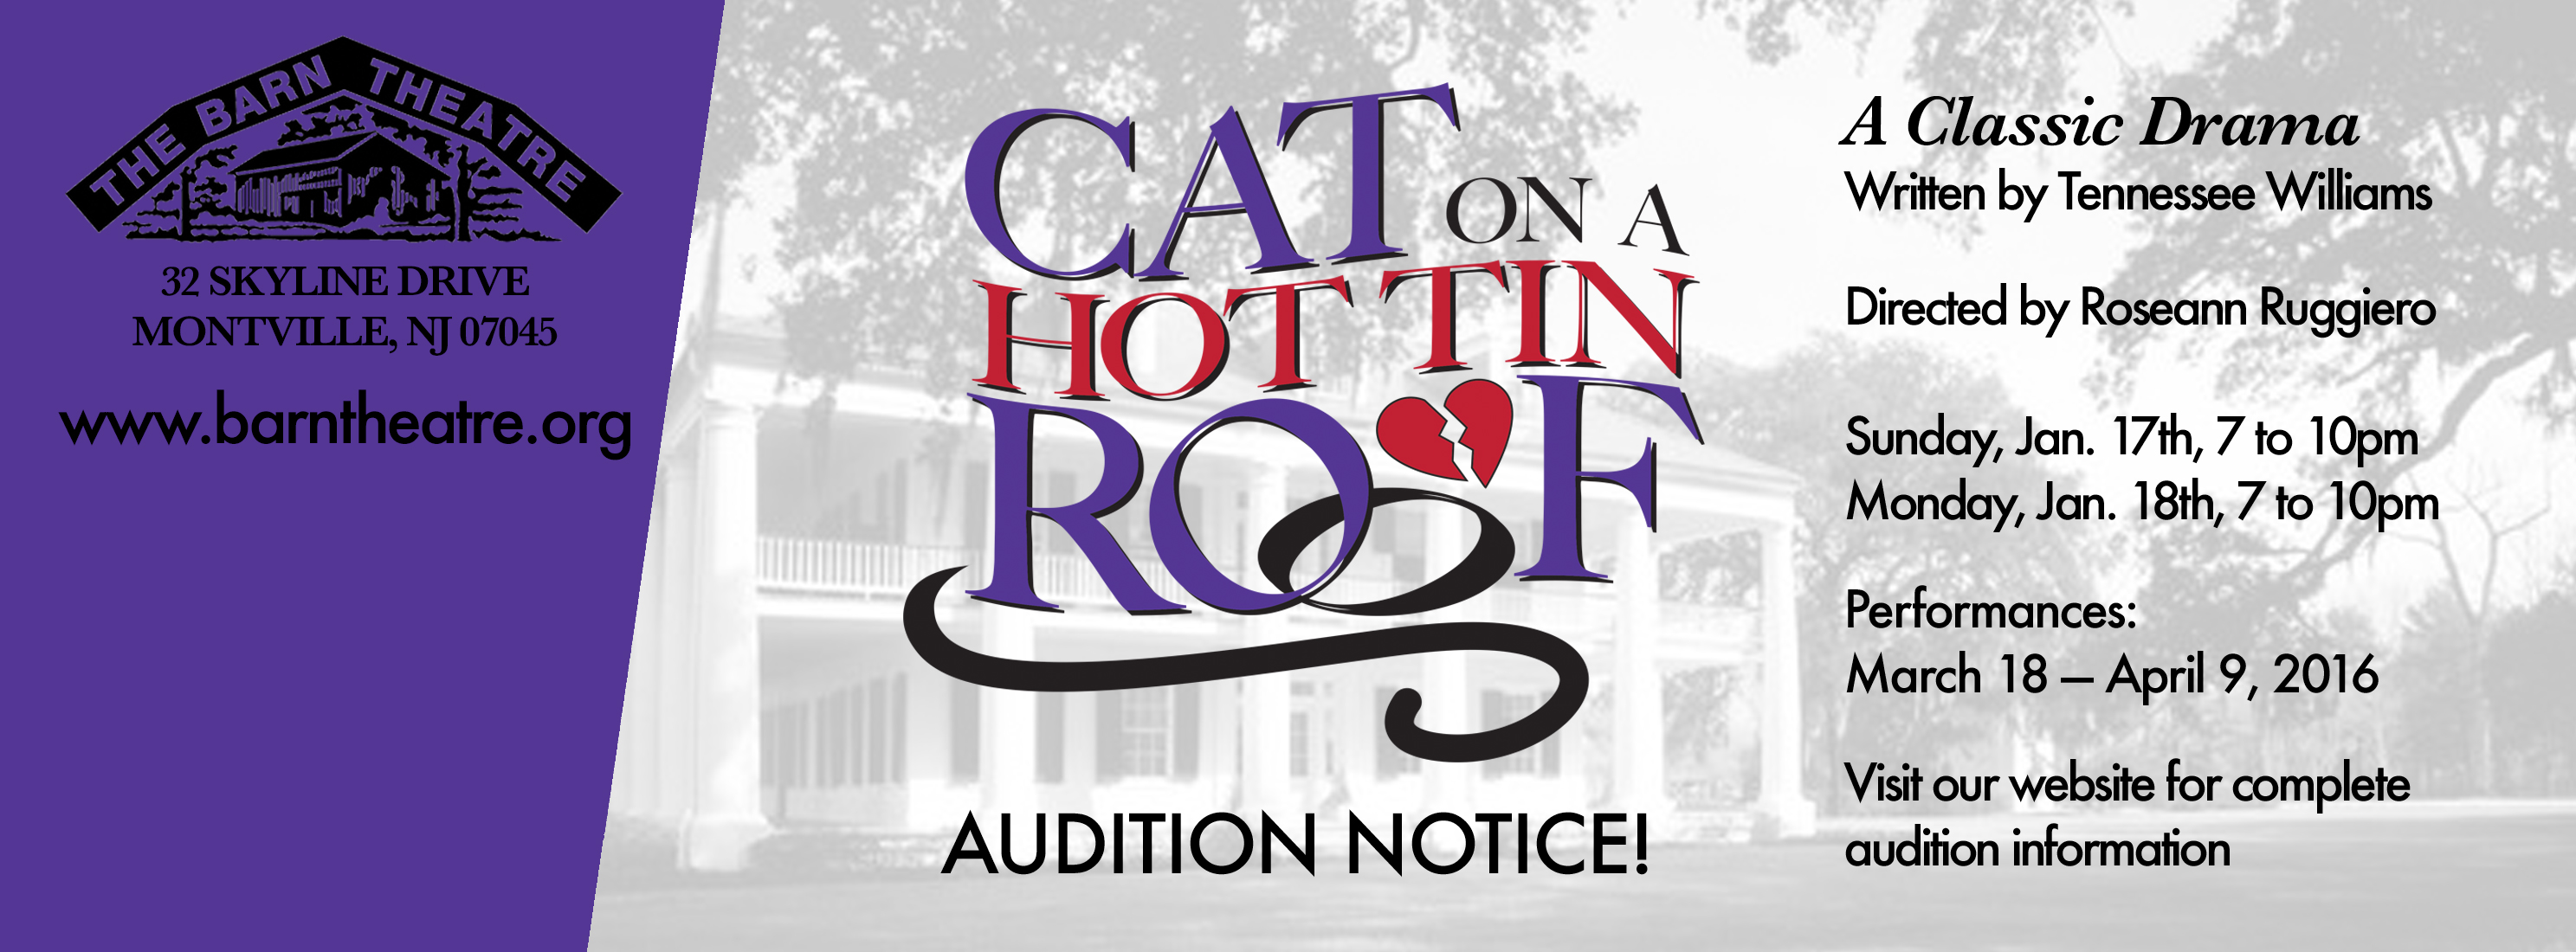 Cat on a Hot Tin Roof Auditions January 17 and 18, 2016